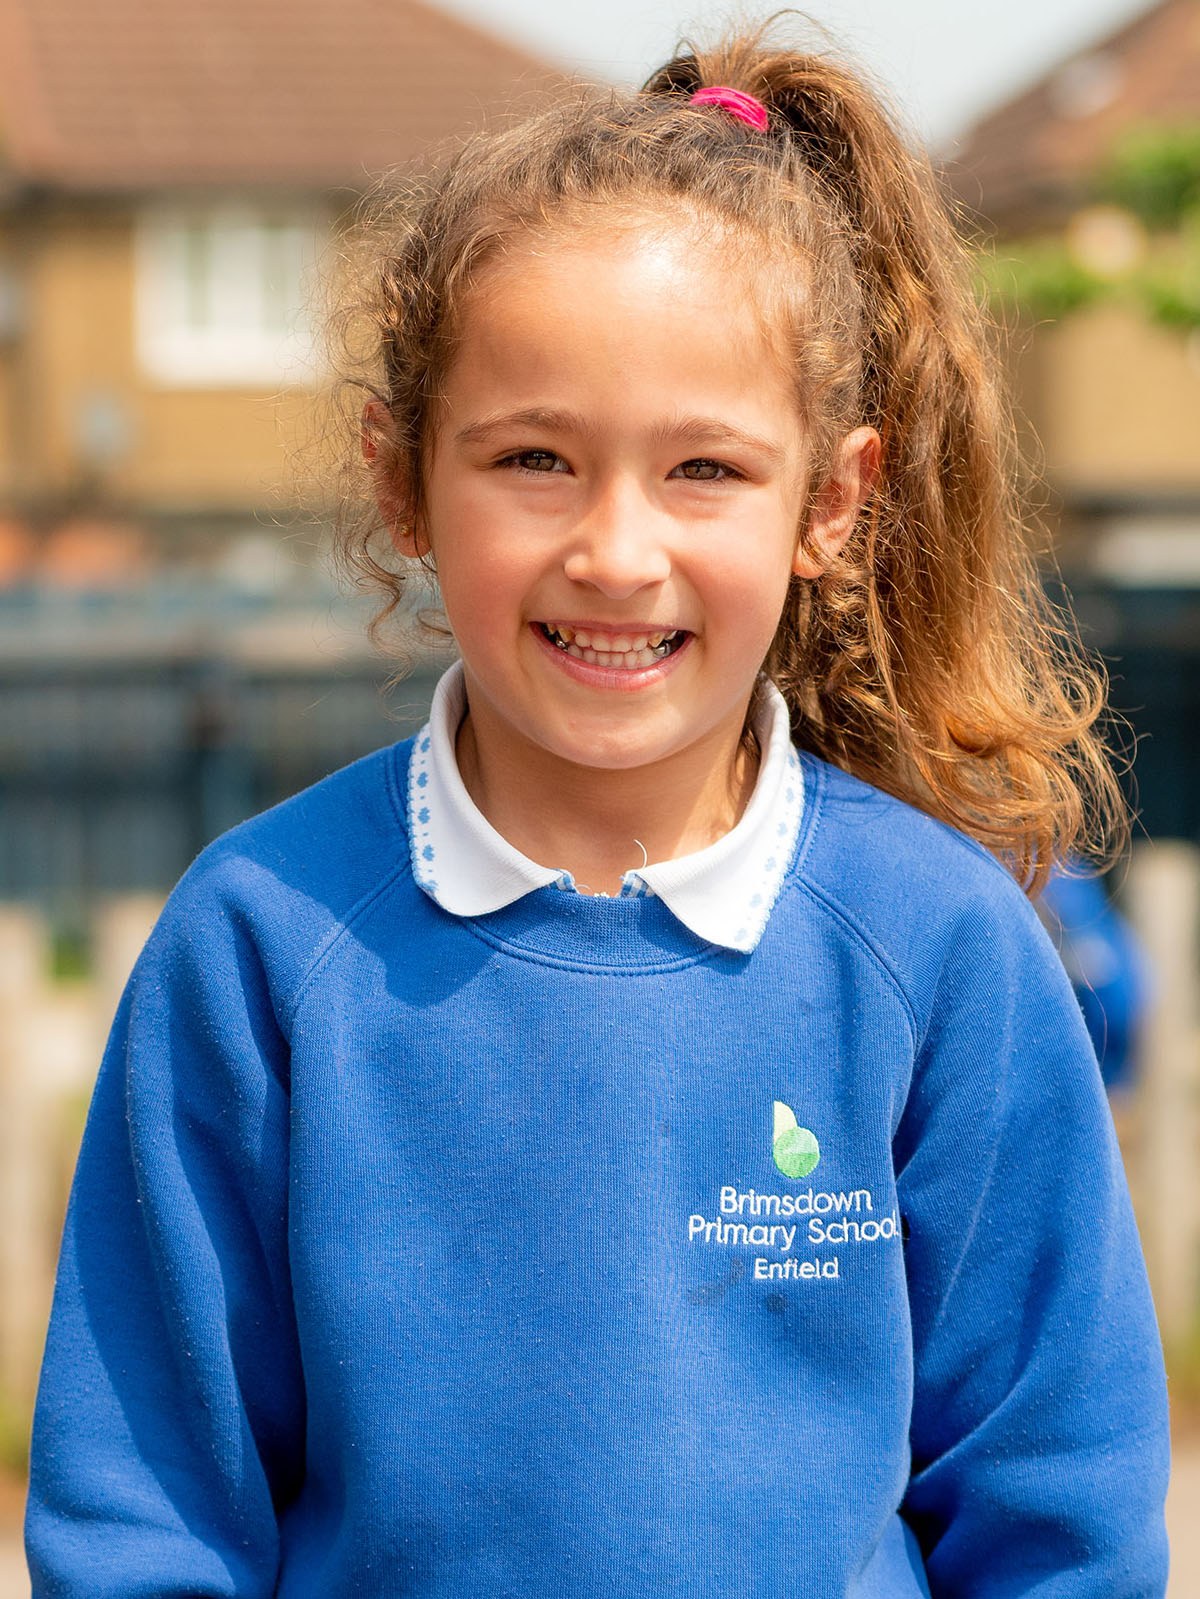 Upper body of young girl smiling in playground